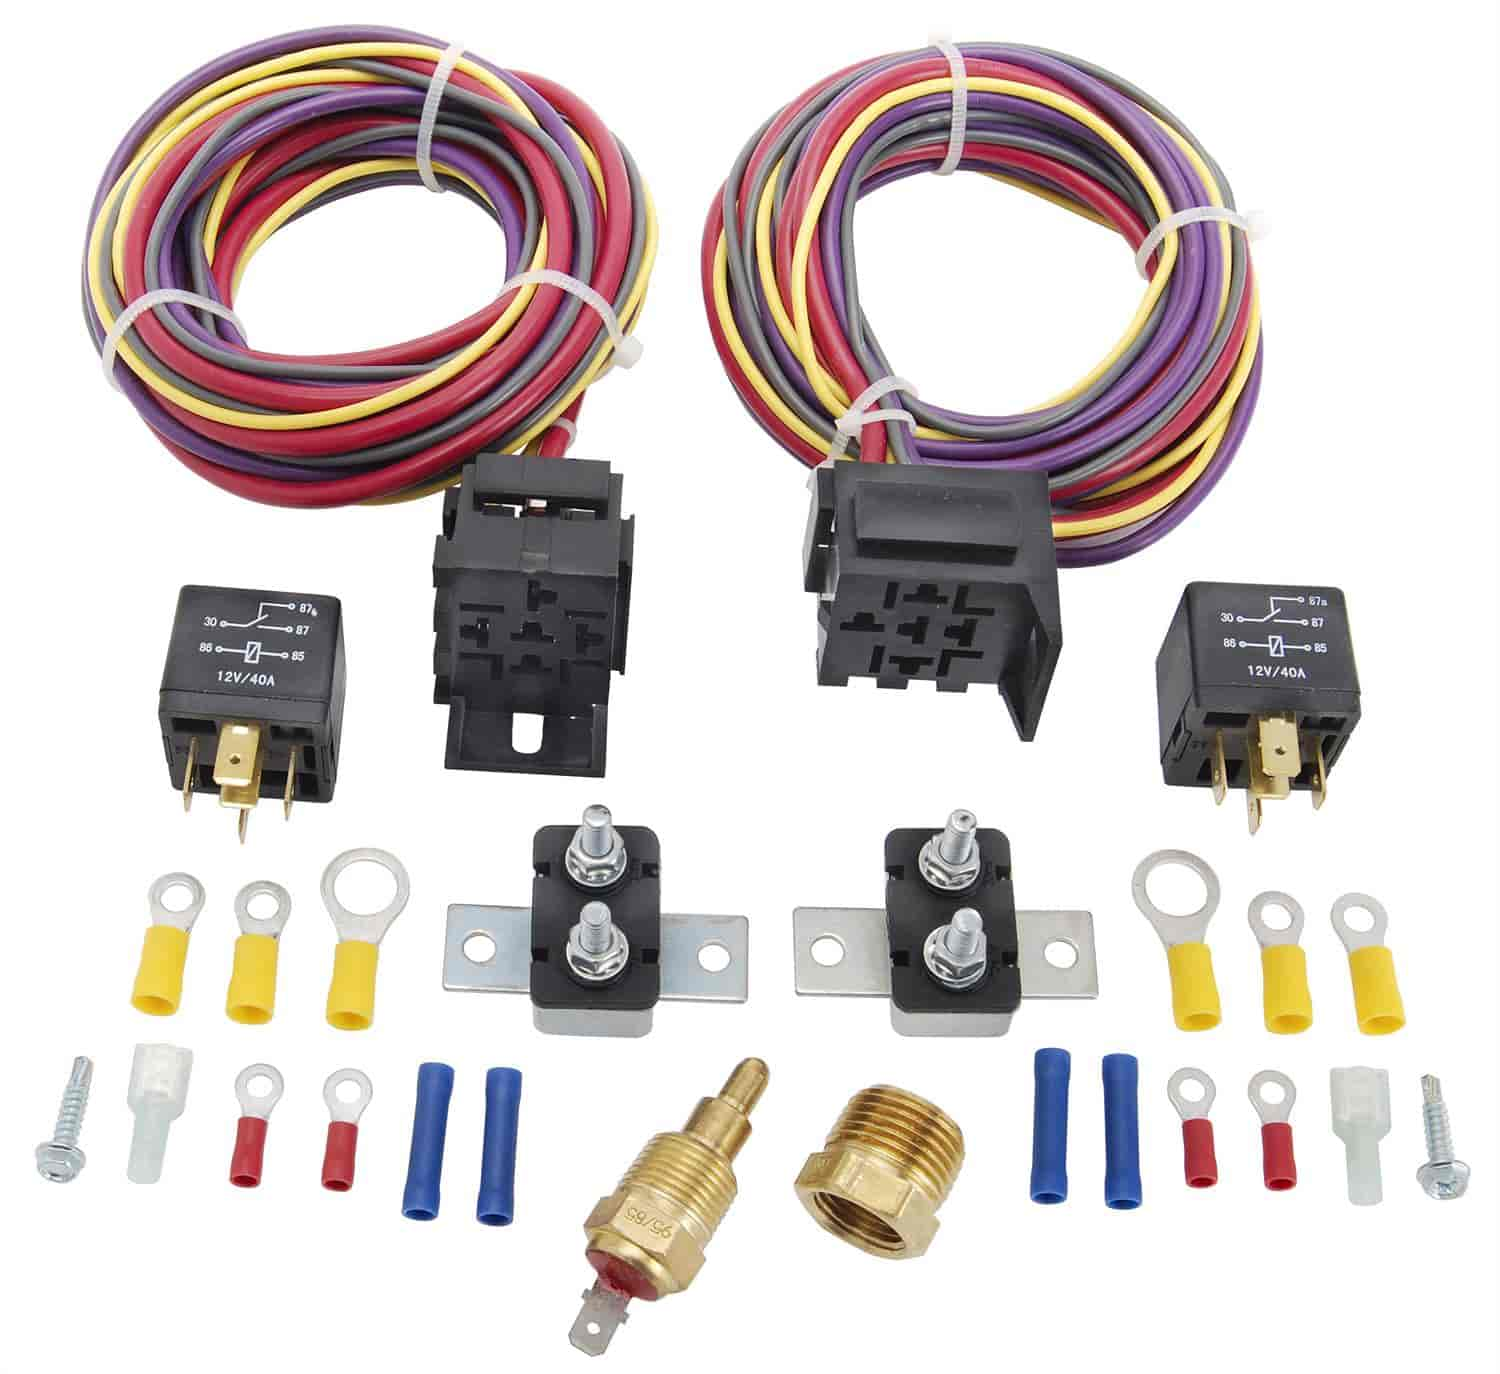 555 10571 jegs performance products 10571 dual fan wiring harness & relay VW Wiring Harness Kits at gsmx.co